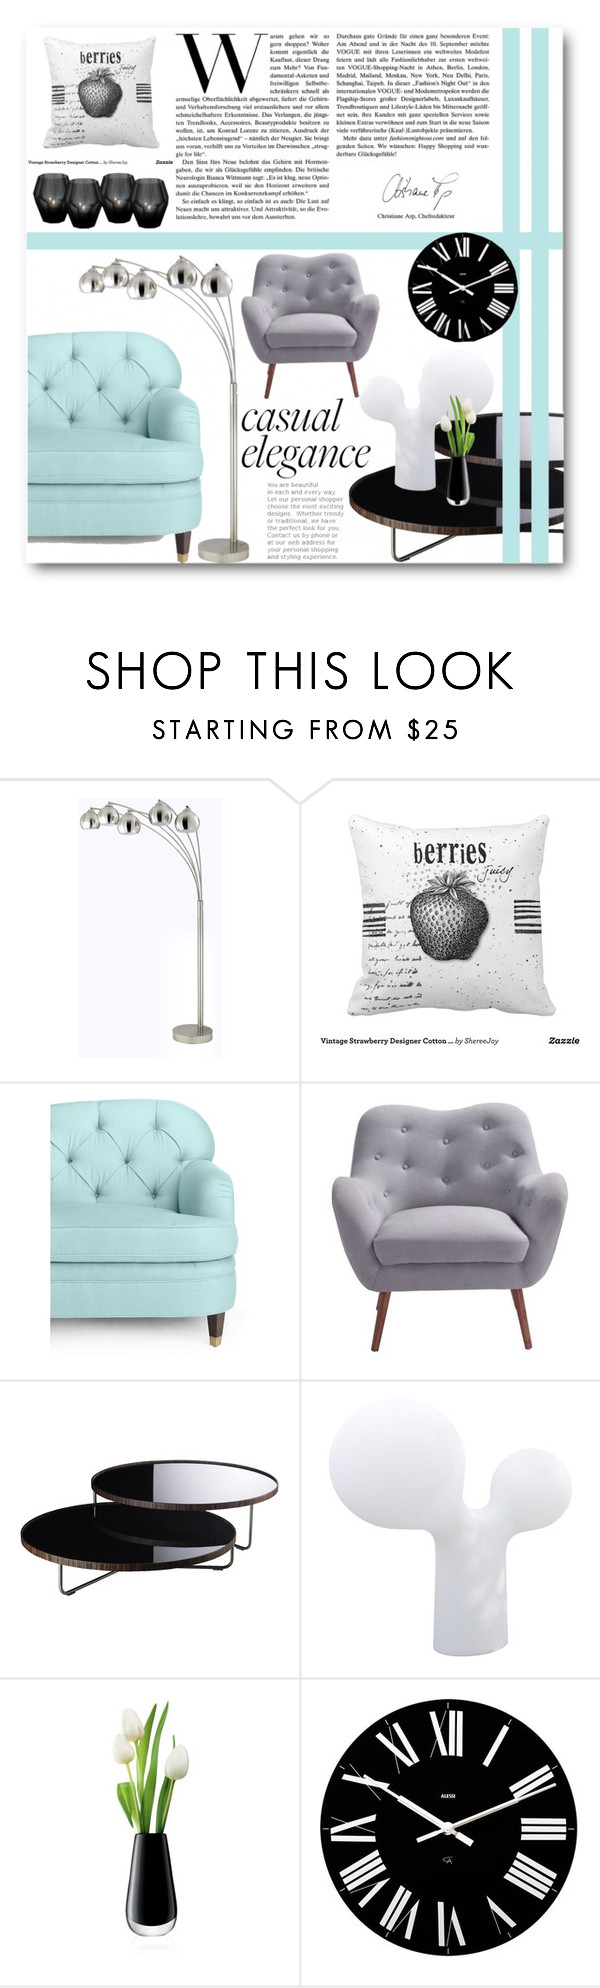 """""""Casual elegance"""" by miljaaurora ❤ liked on Polyvore featuring interior, interiors, interior design, home, home decor, interior decorating, Kate Spade, Moe's Home Collection, Modloft and Studio Eero Aarnio"""